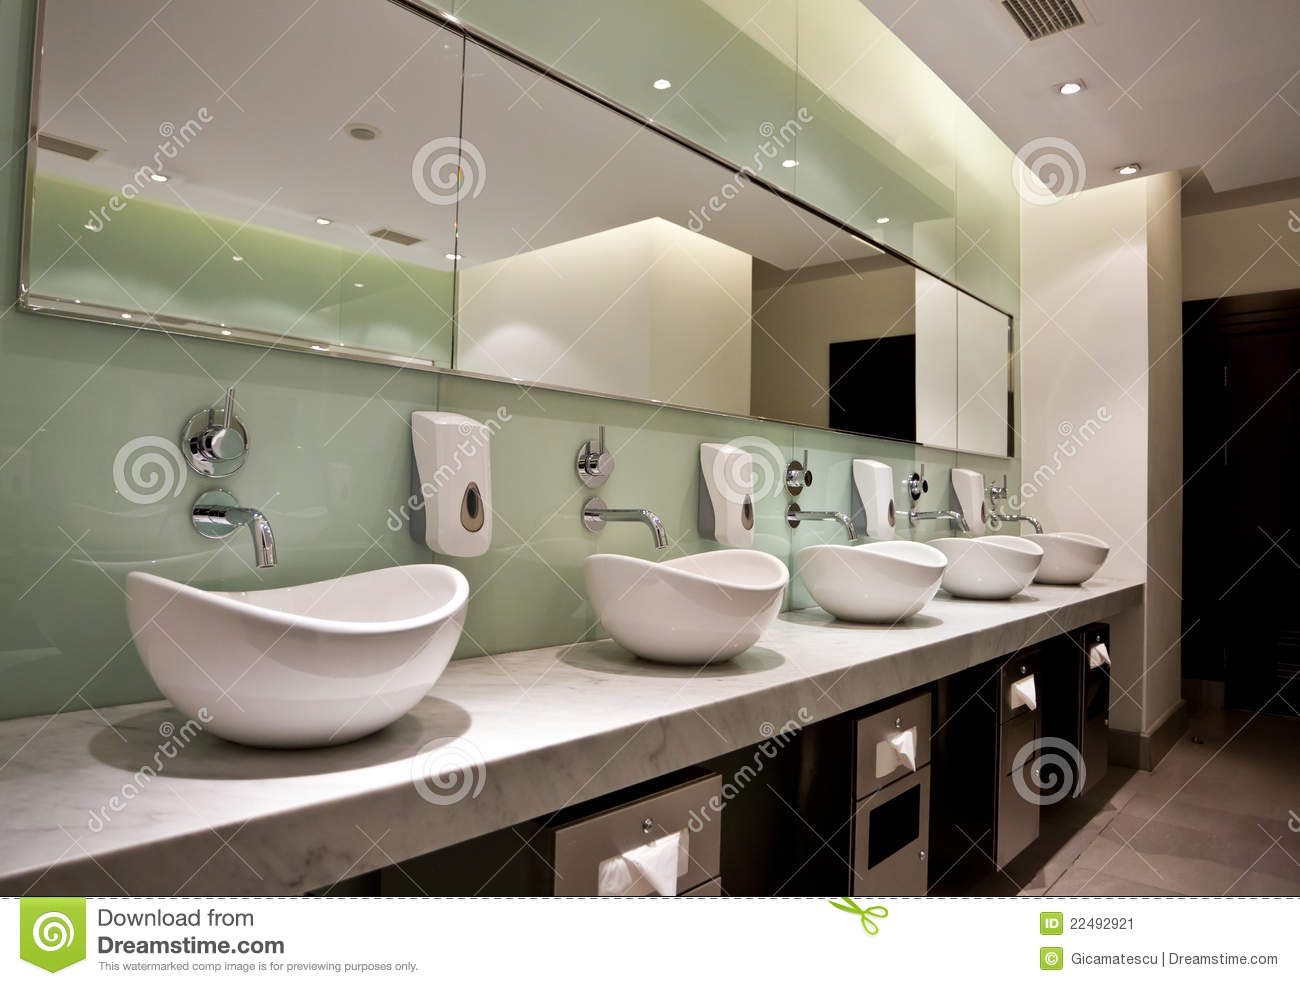 Public Restroom Stock Image Image 22492921